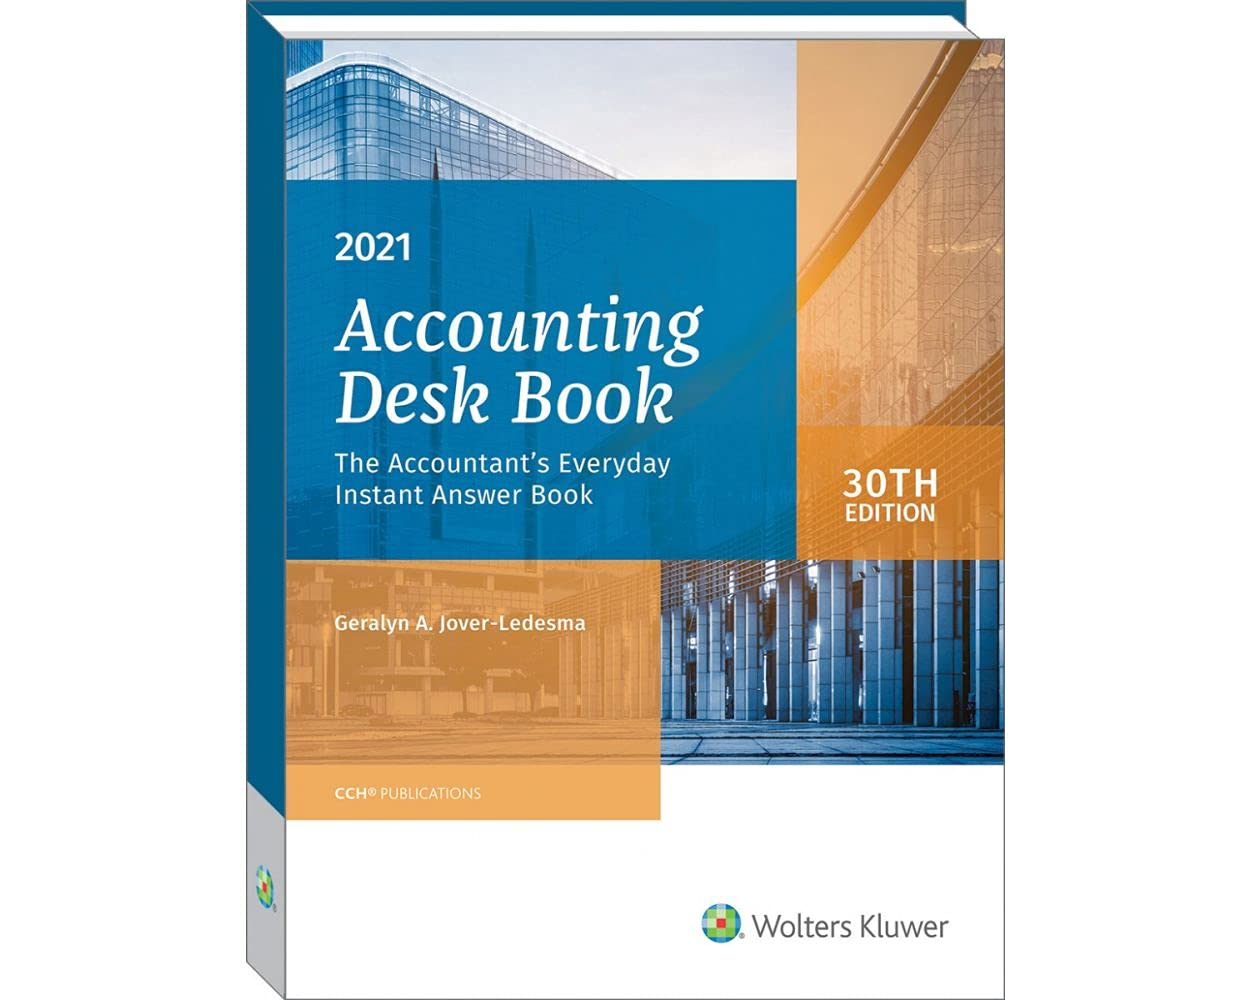 Accounting Desk Book 2021: The Accountant's Everyday Instant Answer Book